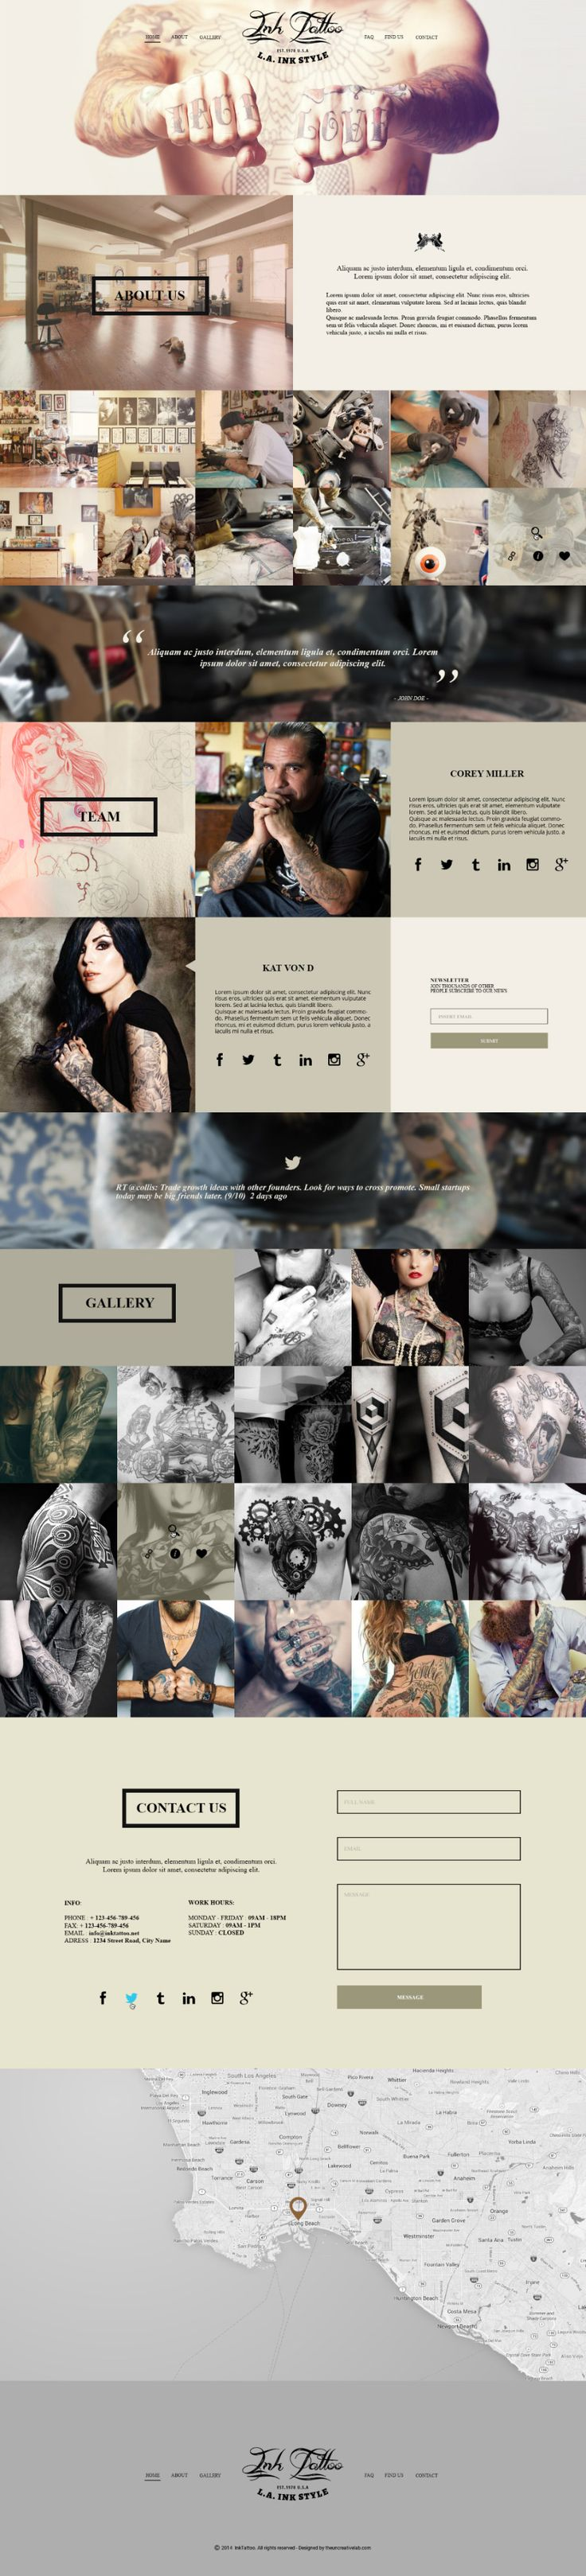 #free #bootstrap #psd preview-inktattoo